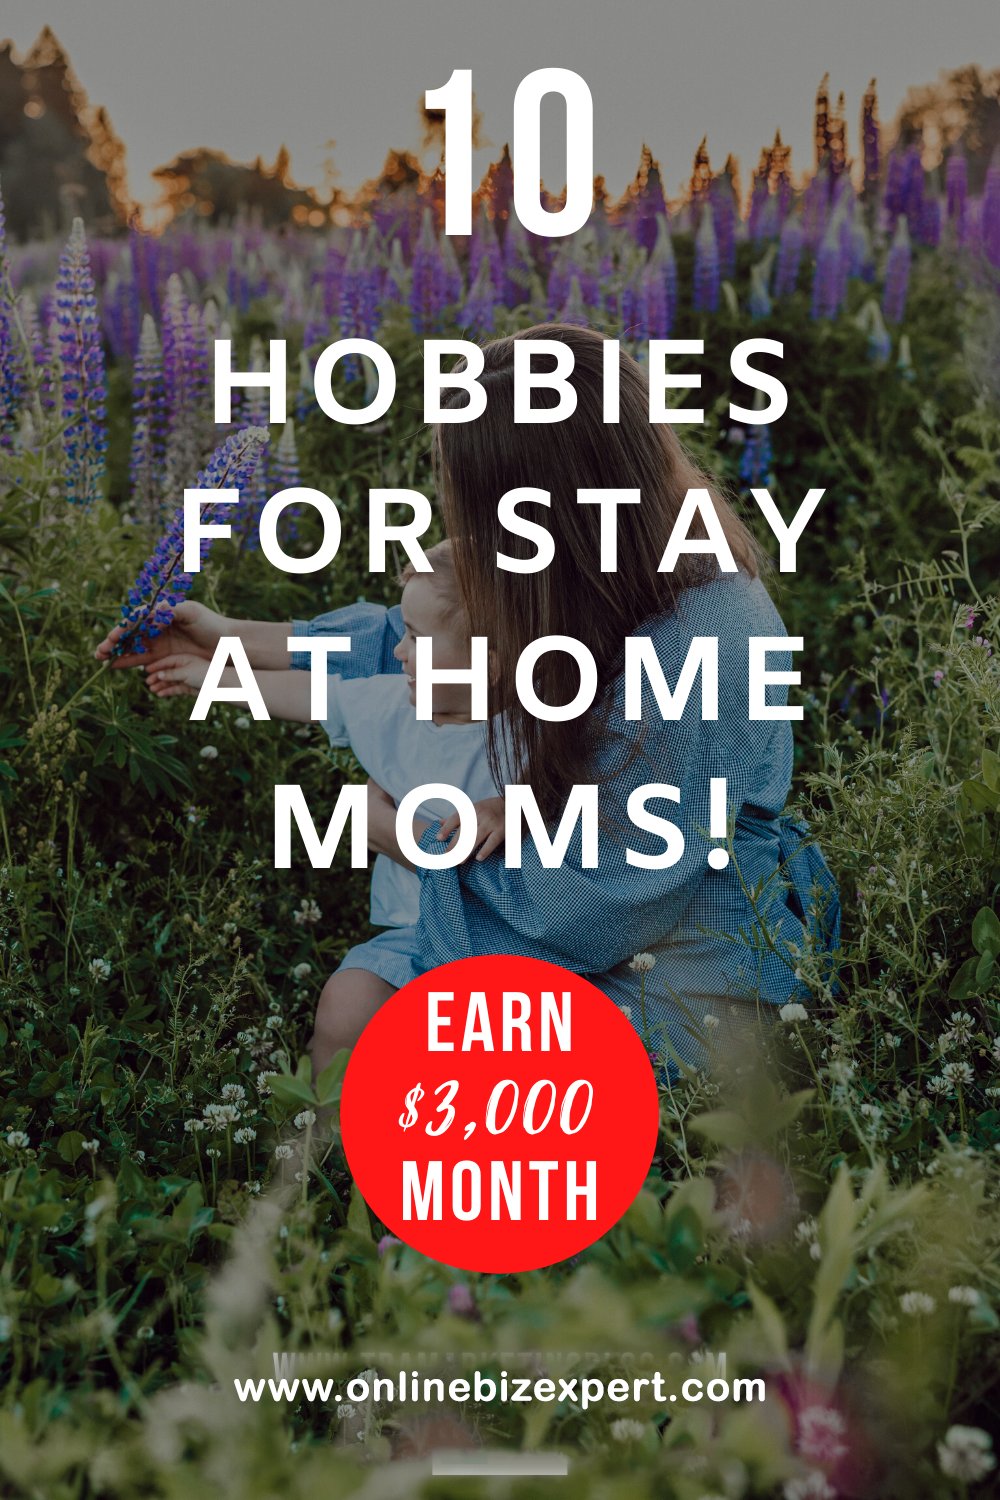 10 WELL PAYING HOBBIES IDEA FOR HOME STAYING MOMS